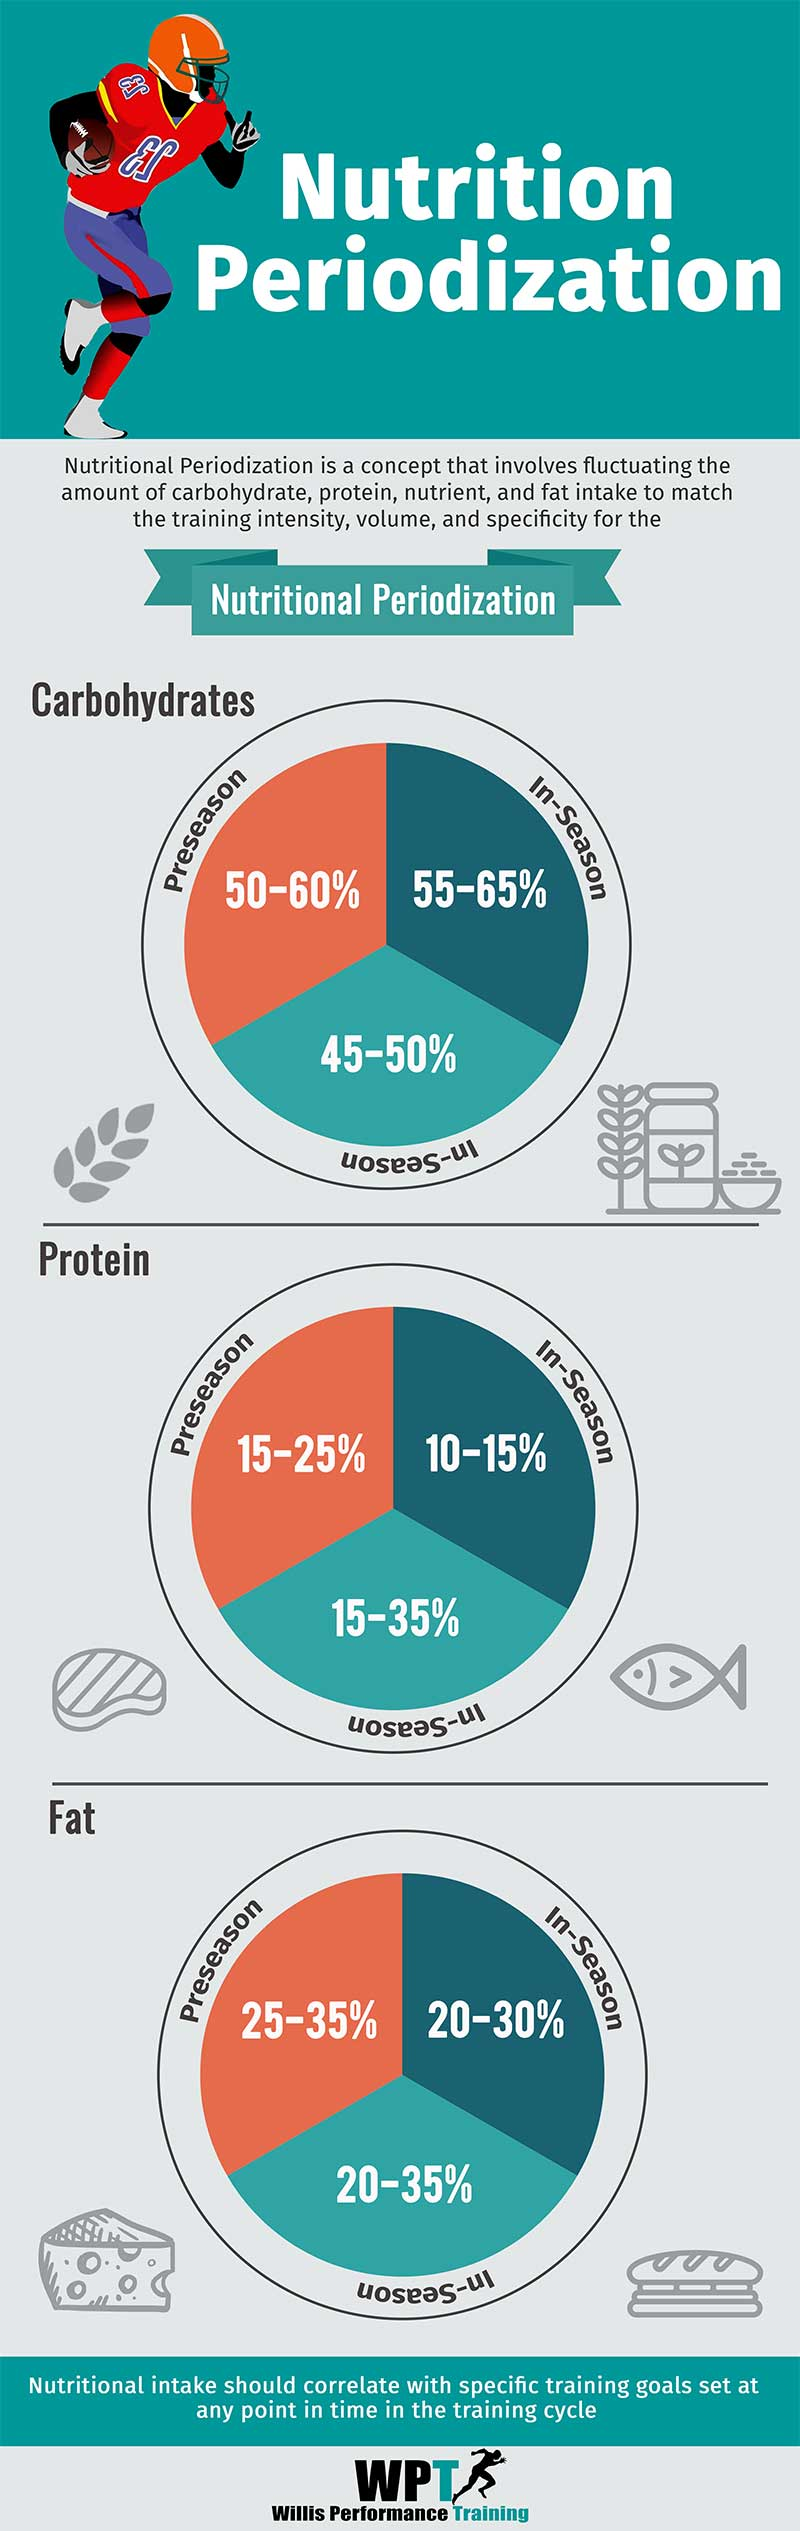 Nutritional-Periodization-Infogram